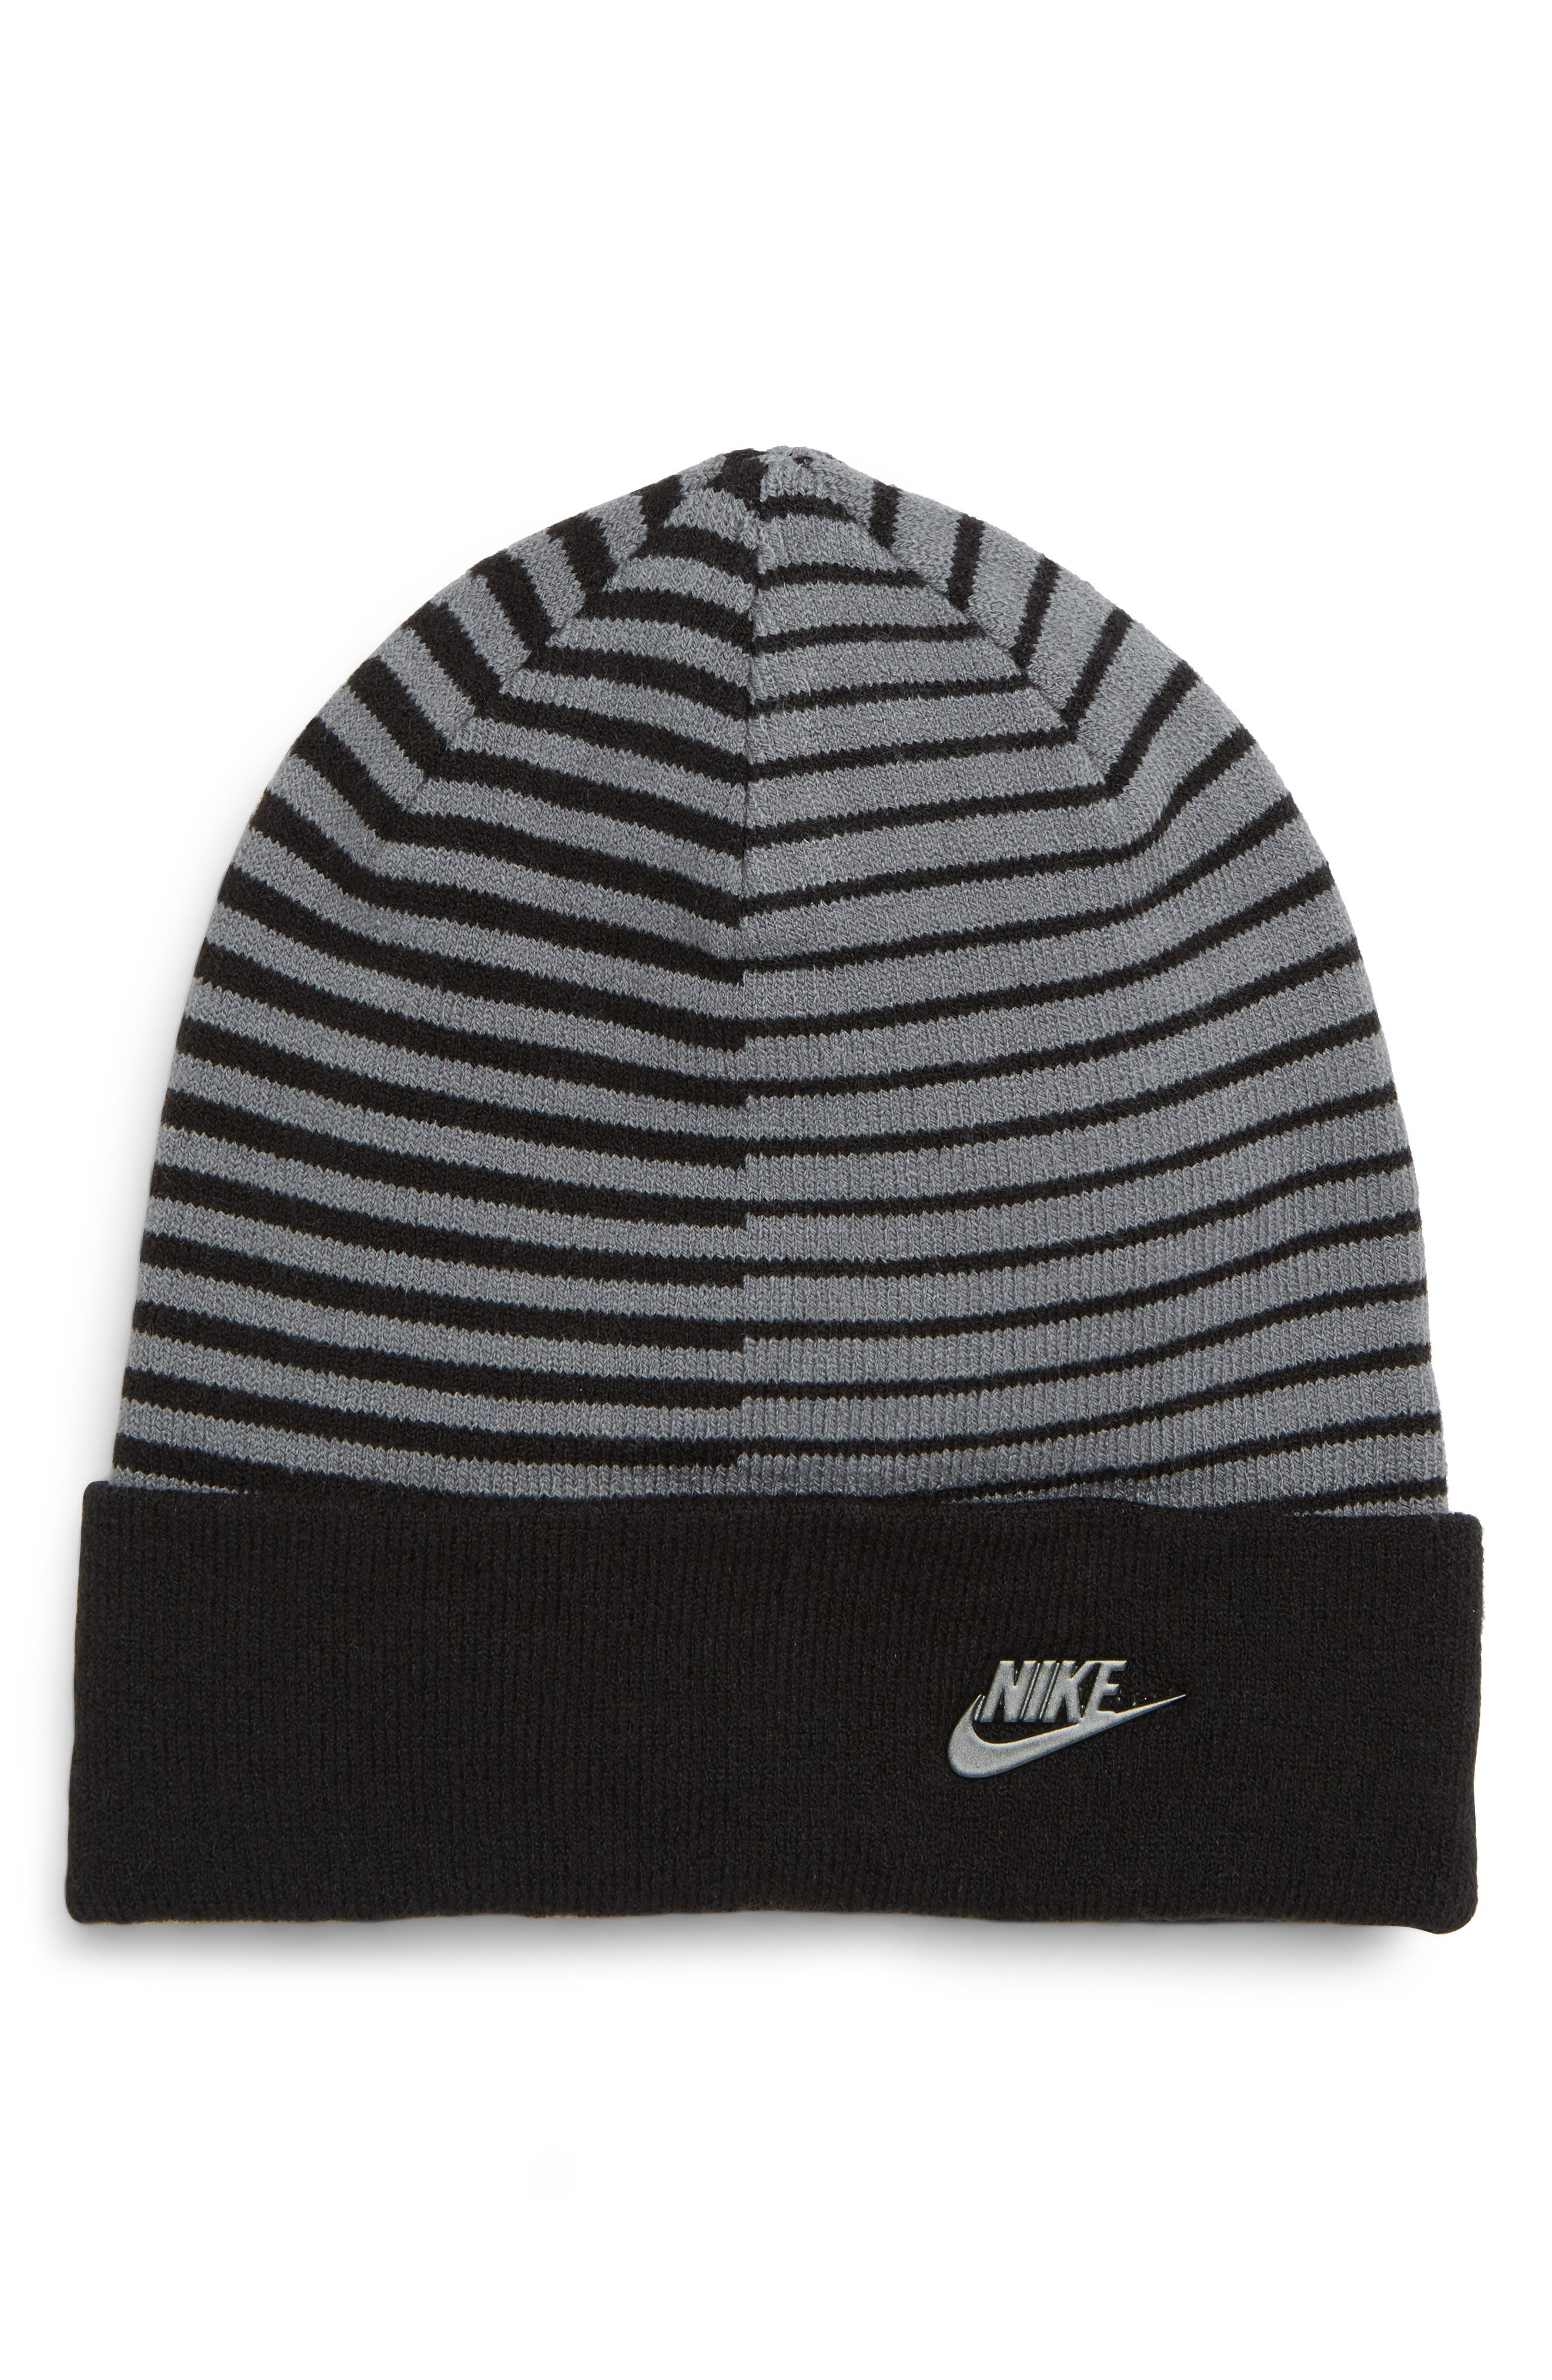 NSW Stripe Beanie,                         Main,                         color, BLACK